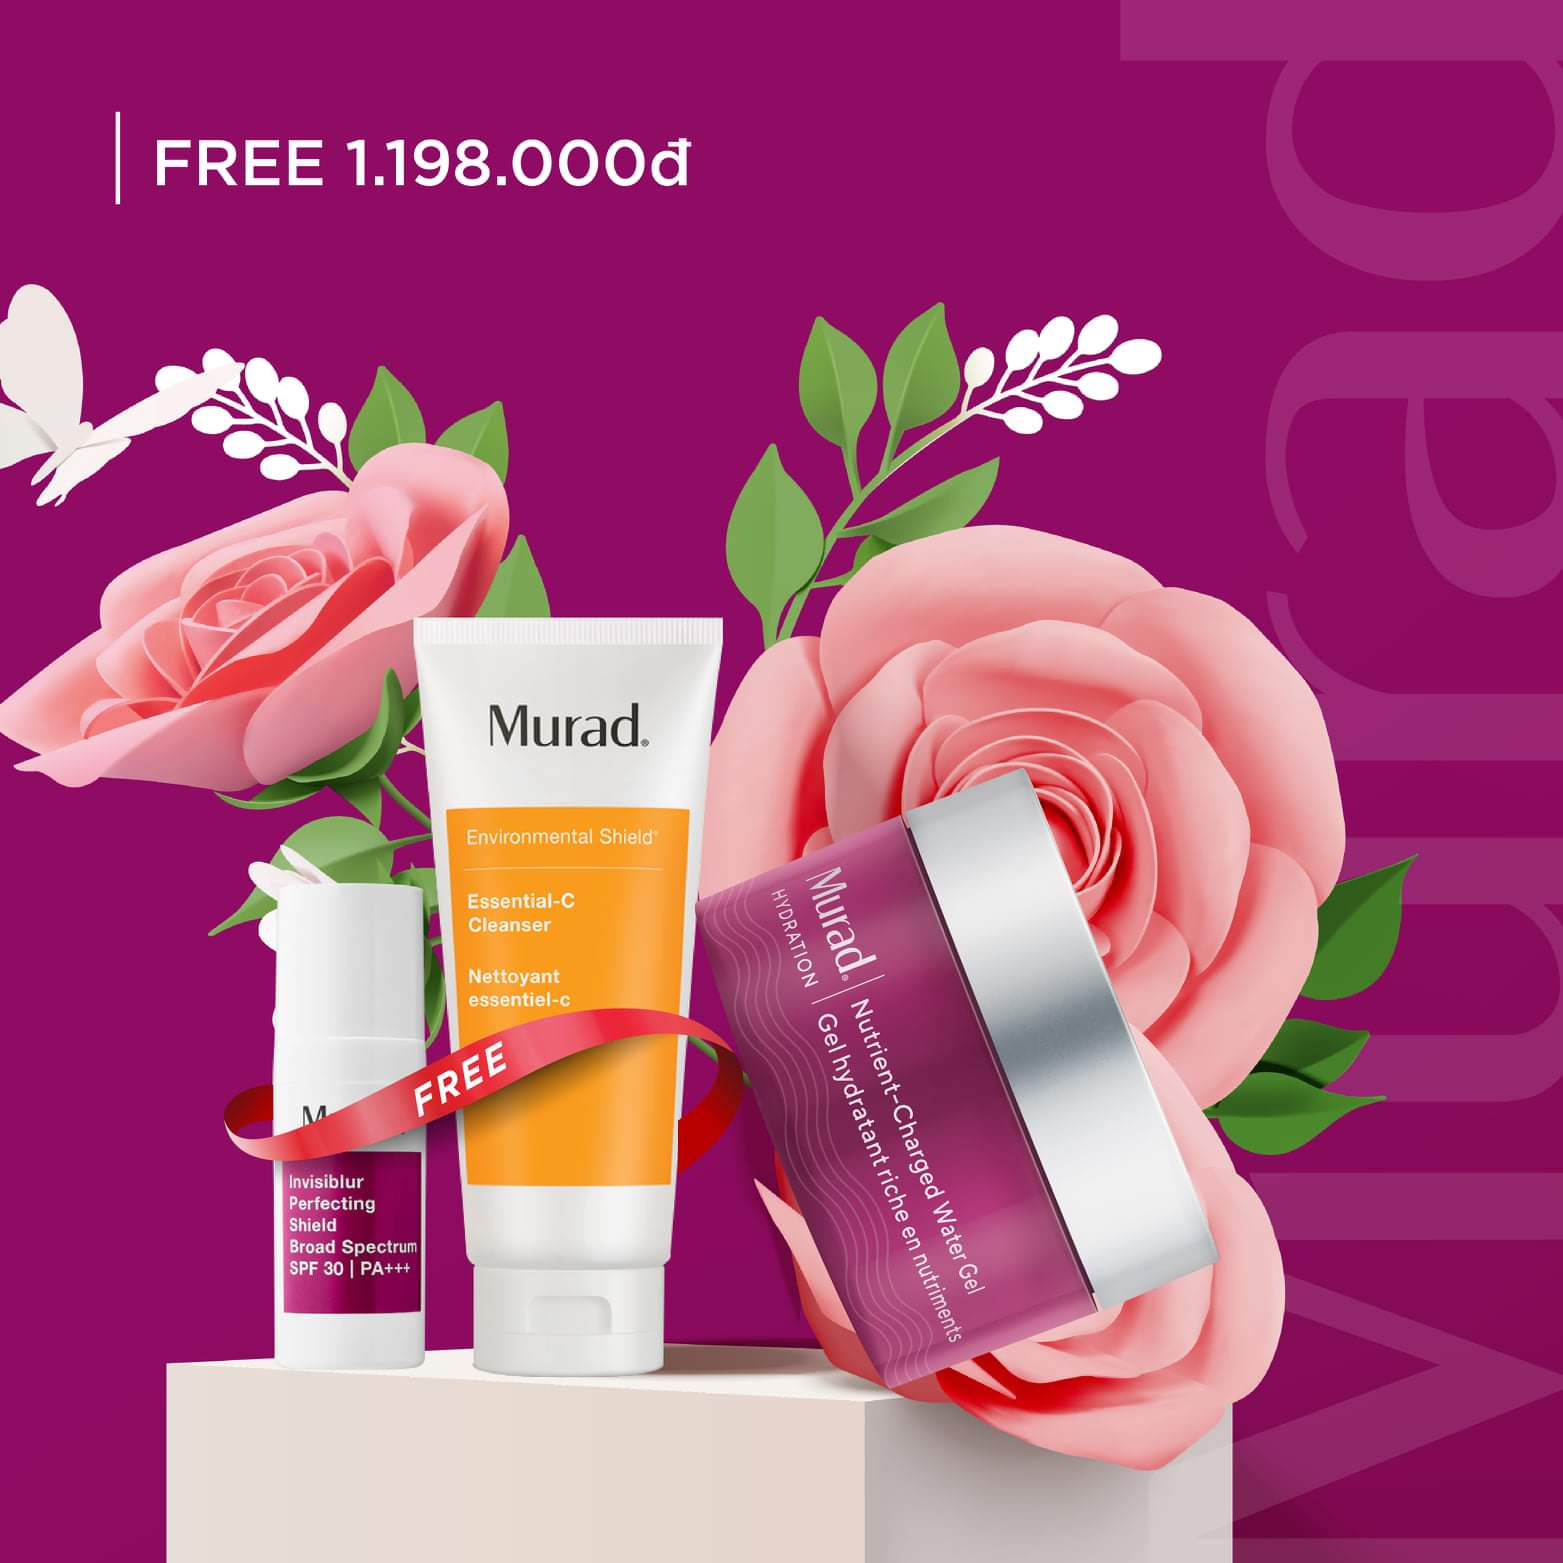 KMT10: Mua Nutrient-Charged Water Gel, tặng Essential-C Cleanser (60ml) trị giá 390.000đ và Invisiblur 10ml 808.000đ